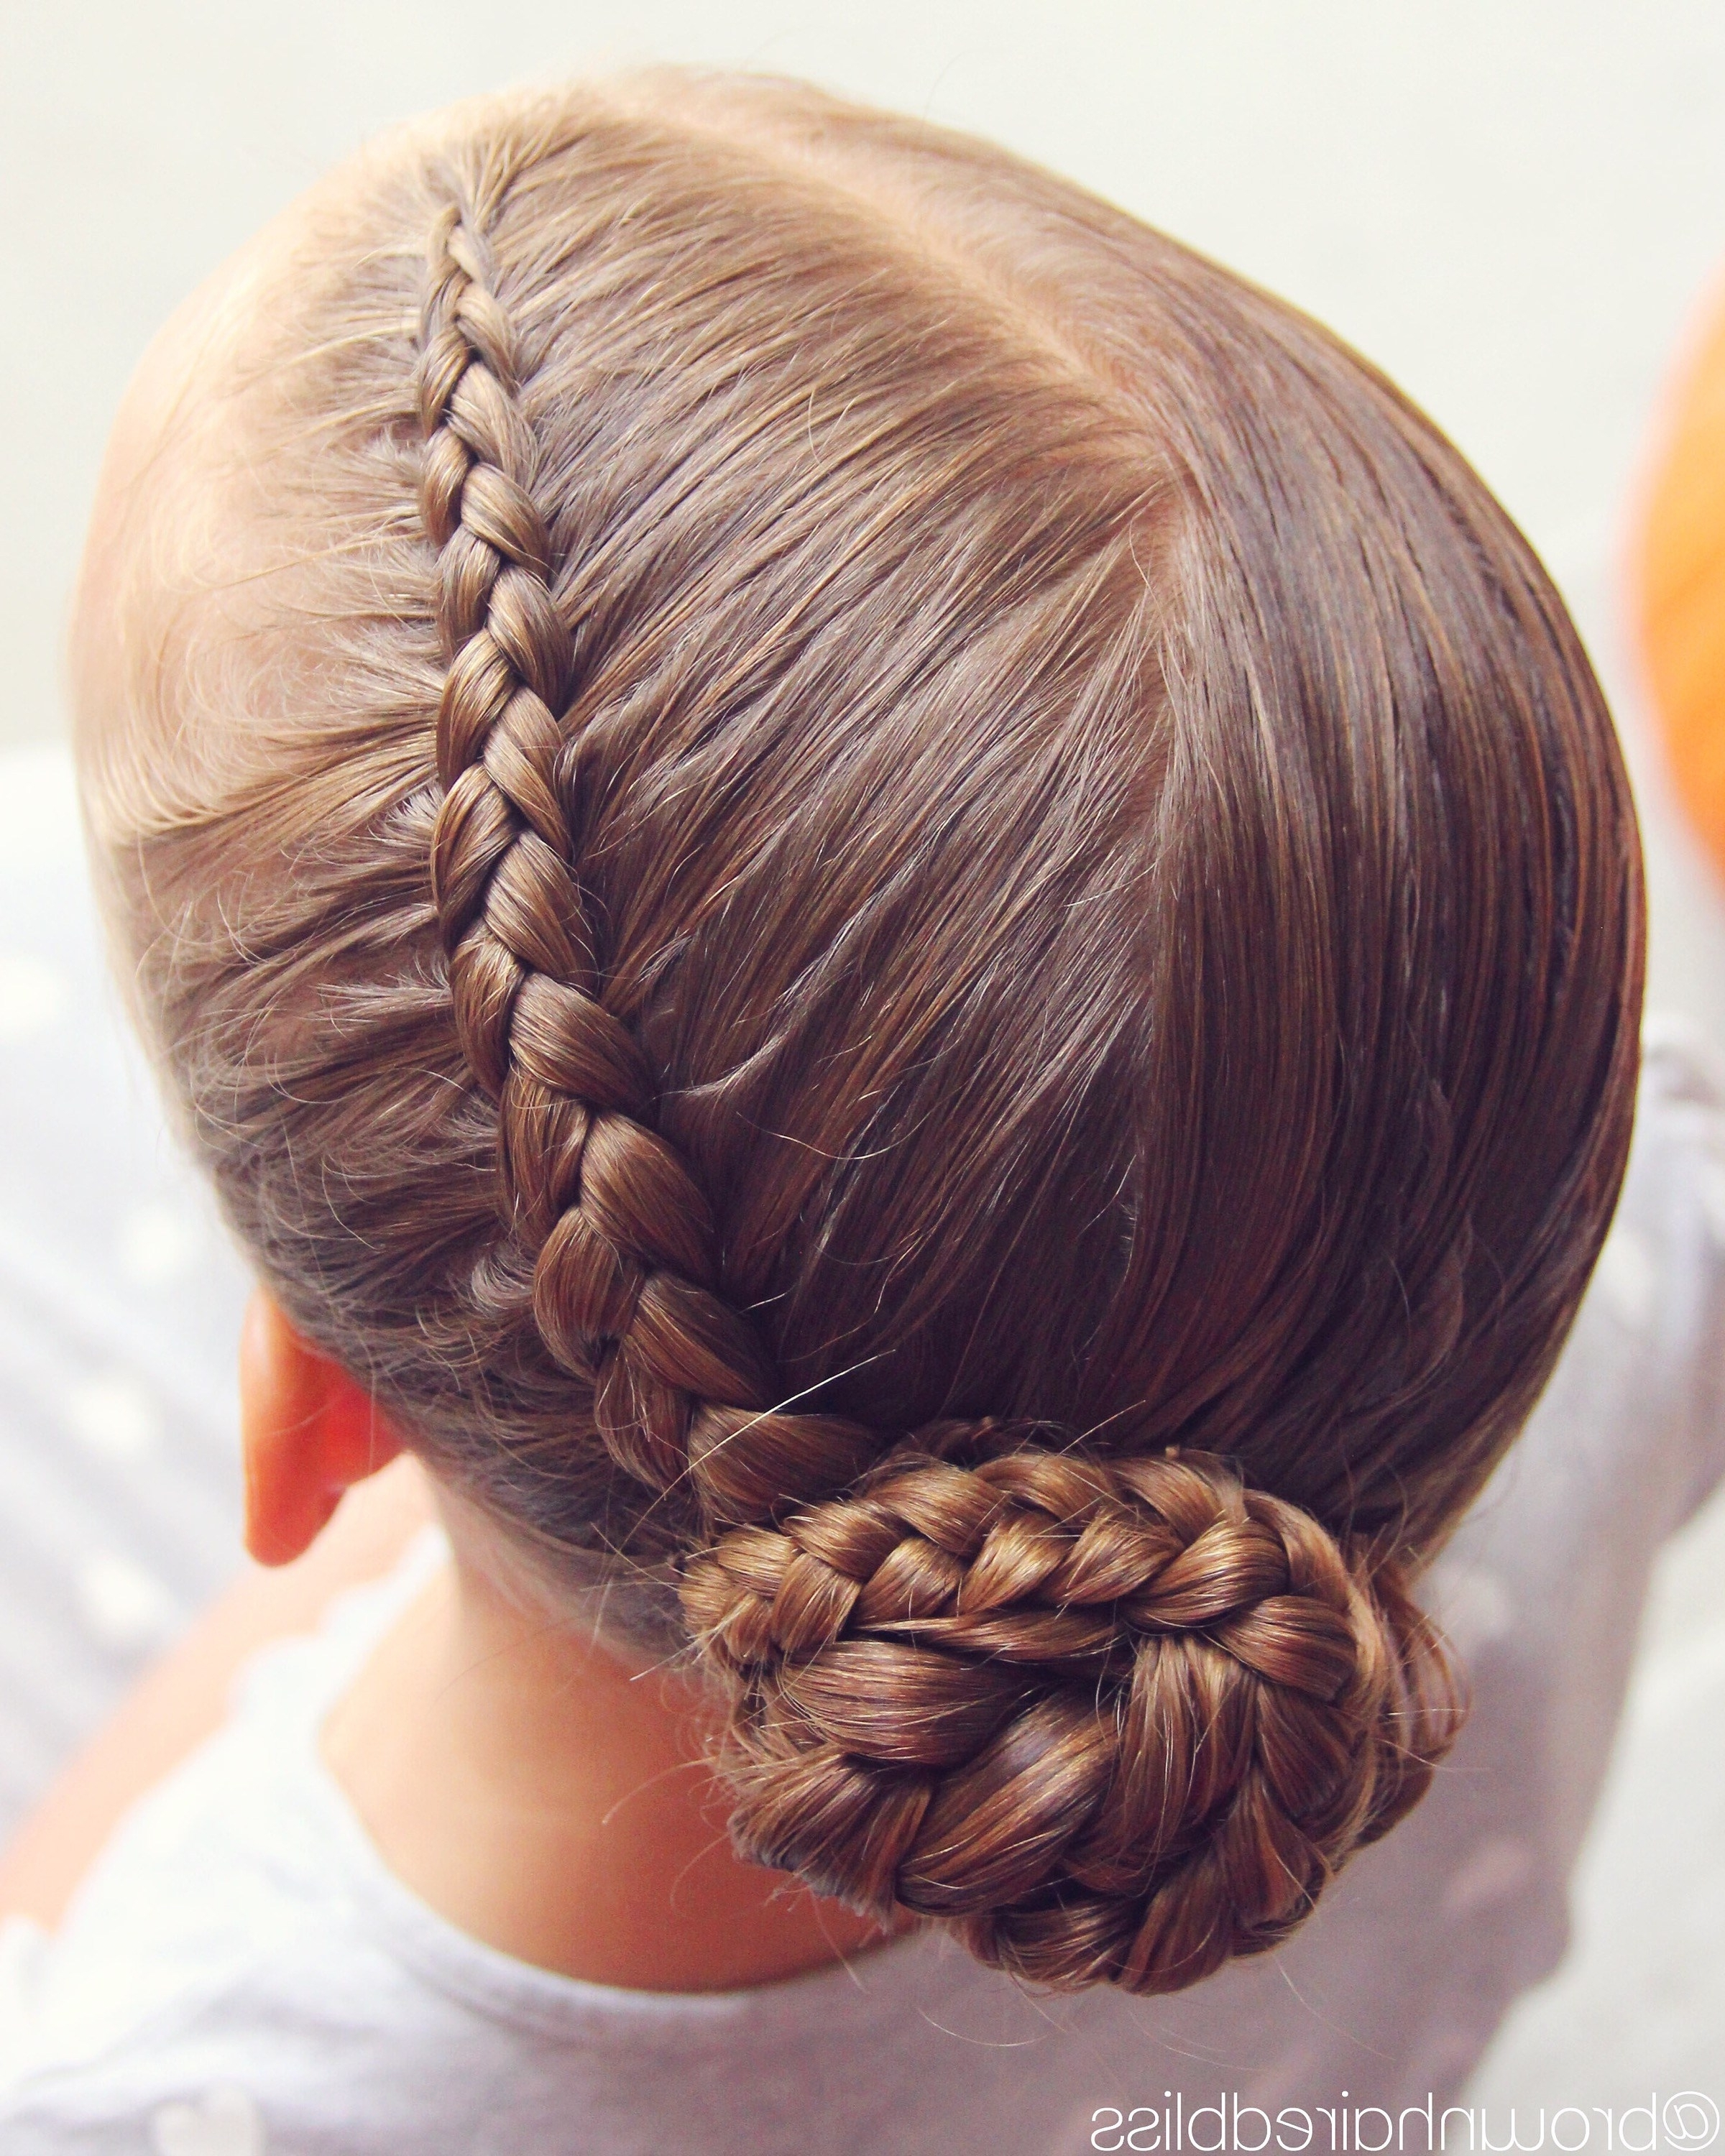 Diagonal Dutch Braid Into A Side Braided Bun – Within Favorite French Braids Into Bun (View 3 of 15)